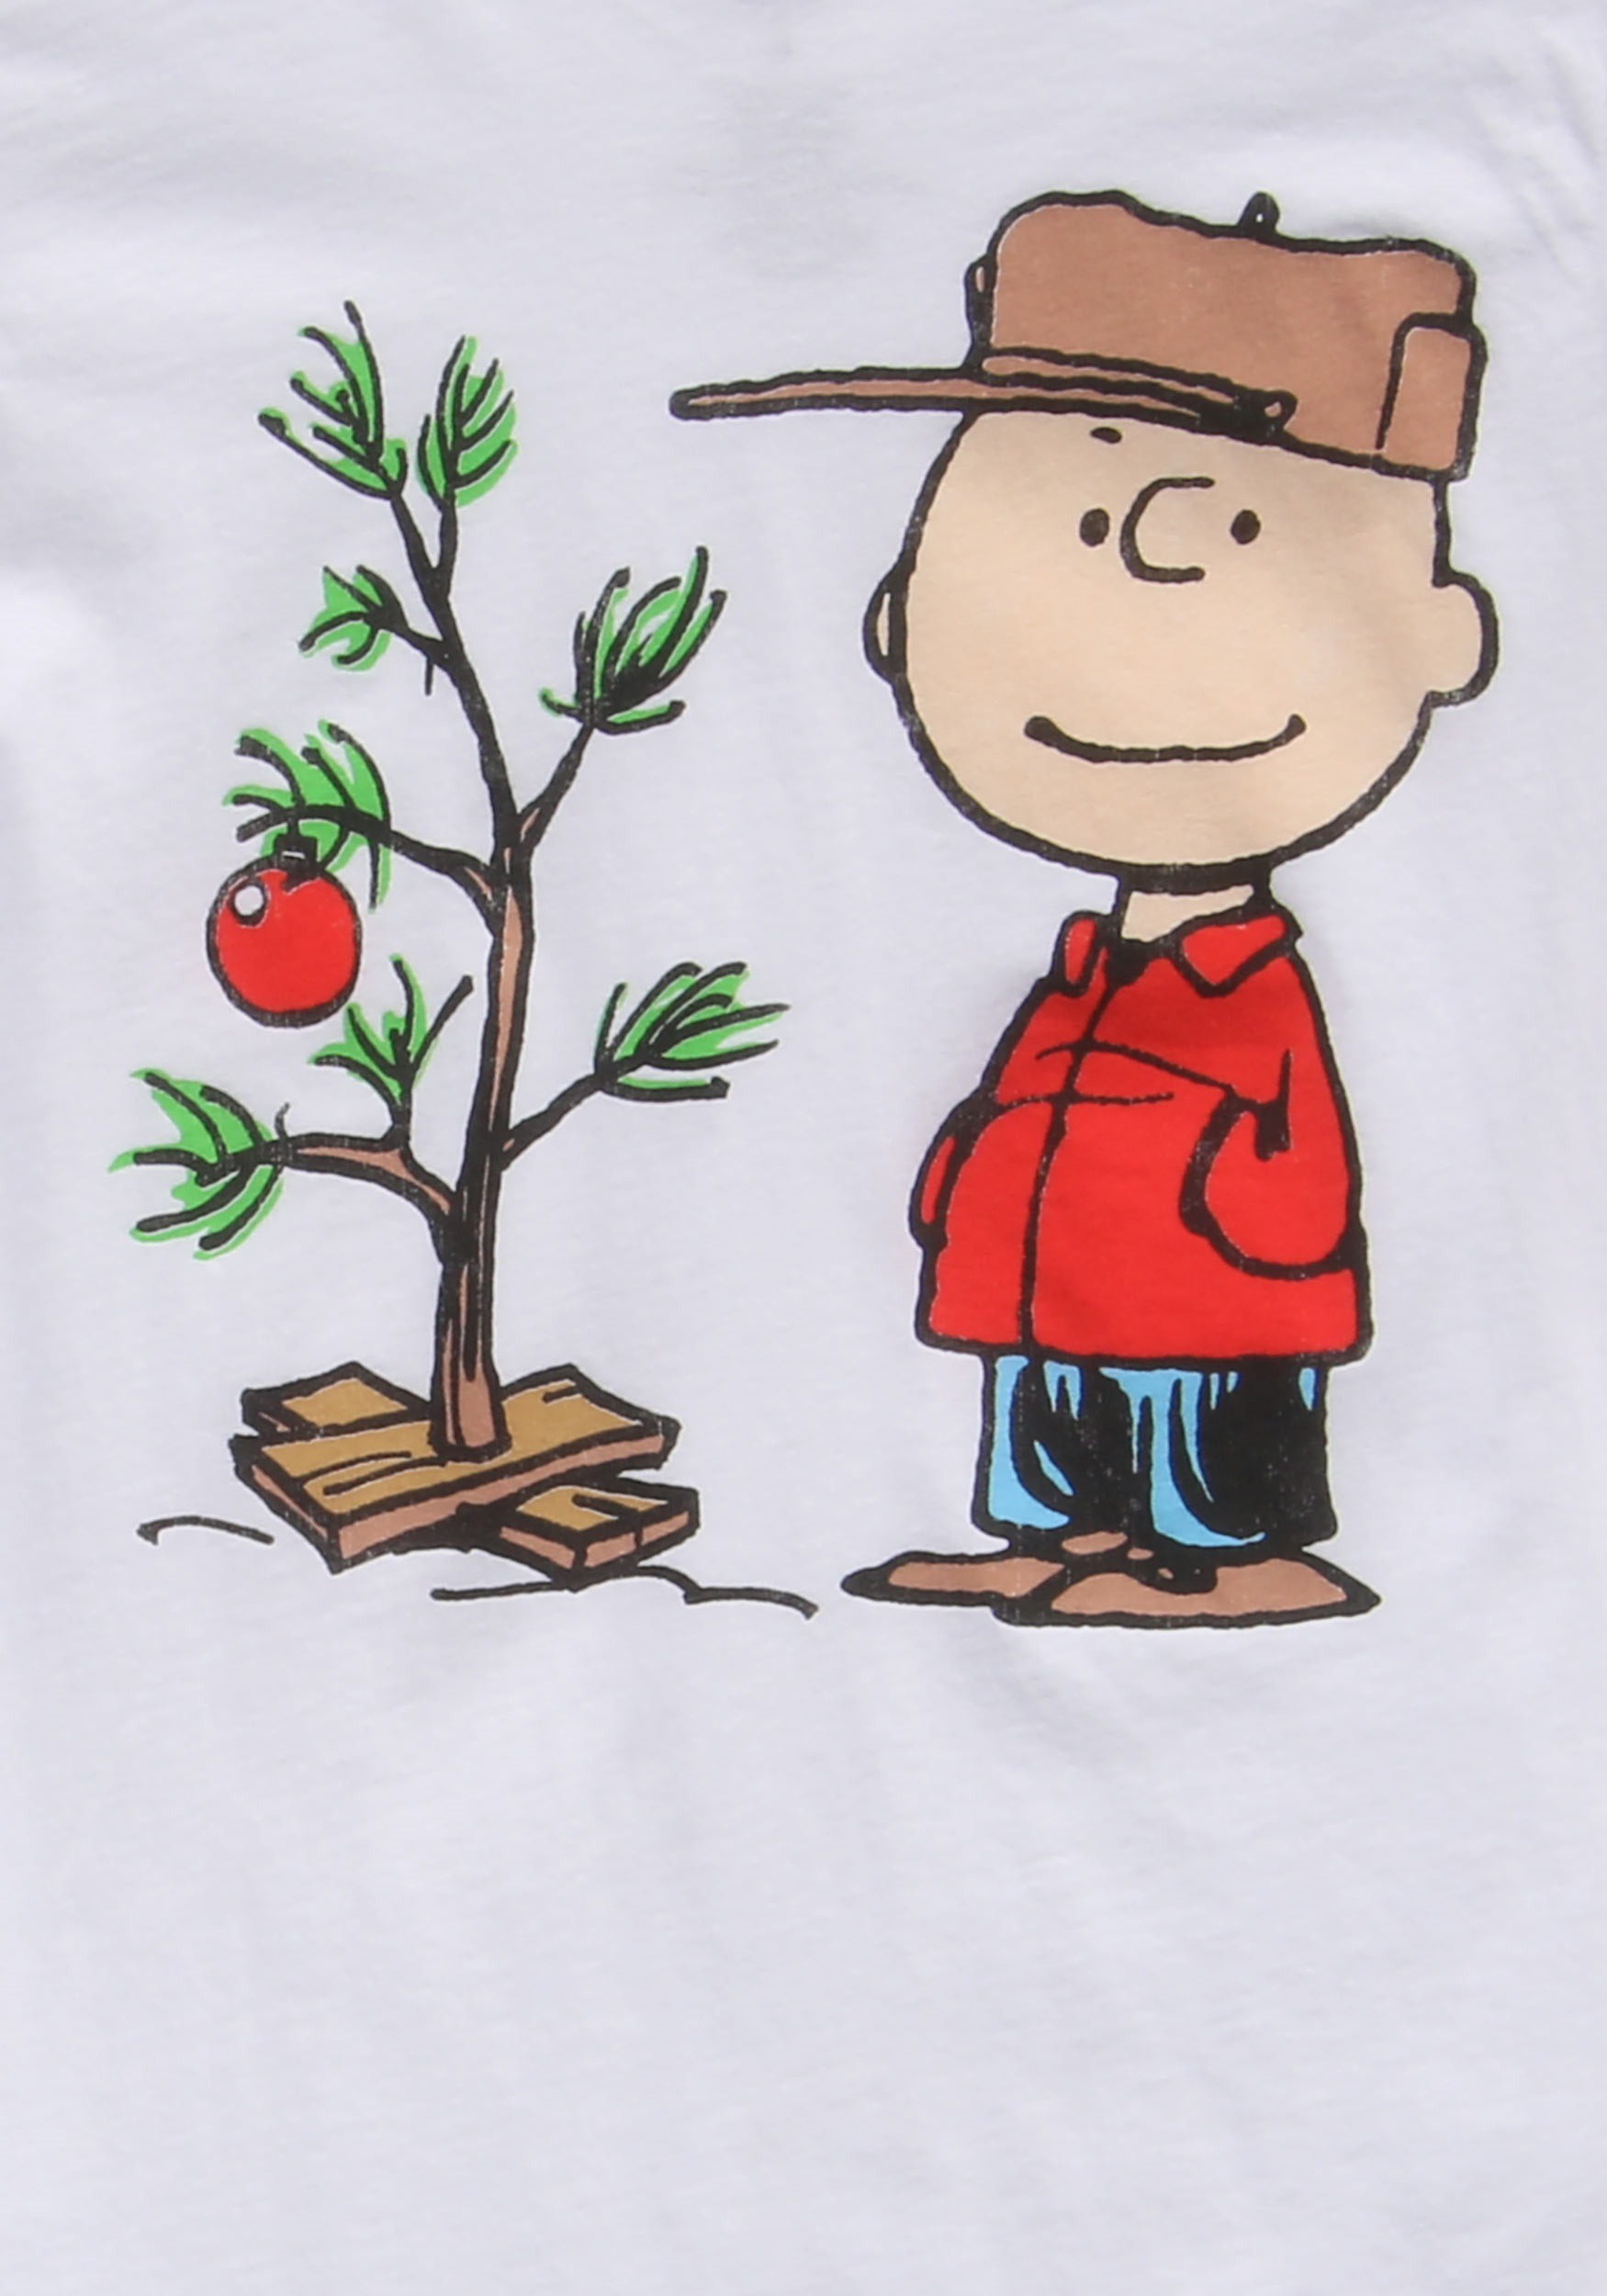 Juniors charlie brown christmas tree t shirt juniors charlie brown christmas tree t shirt1 voltagebd Image collections